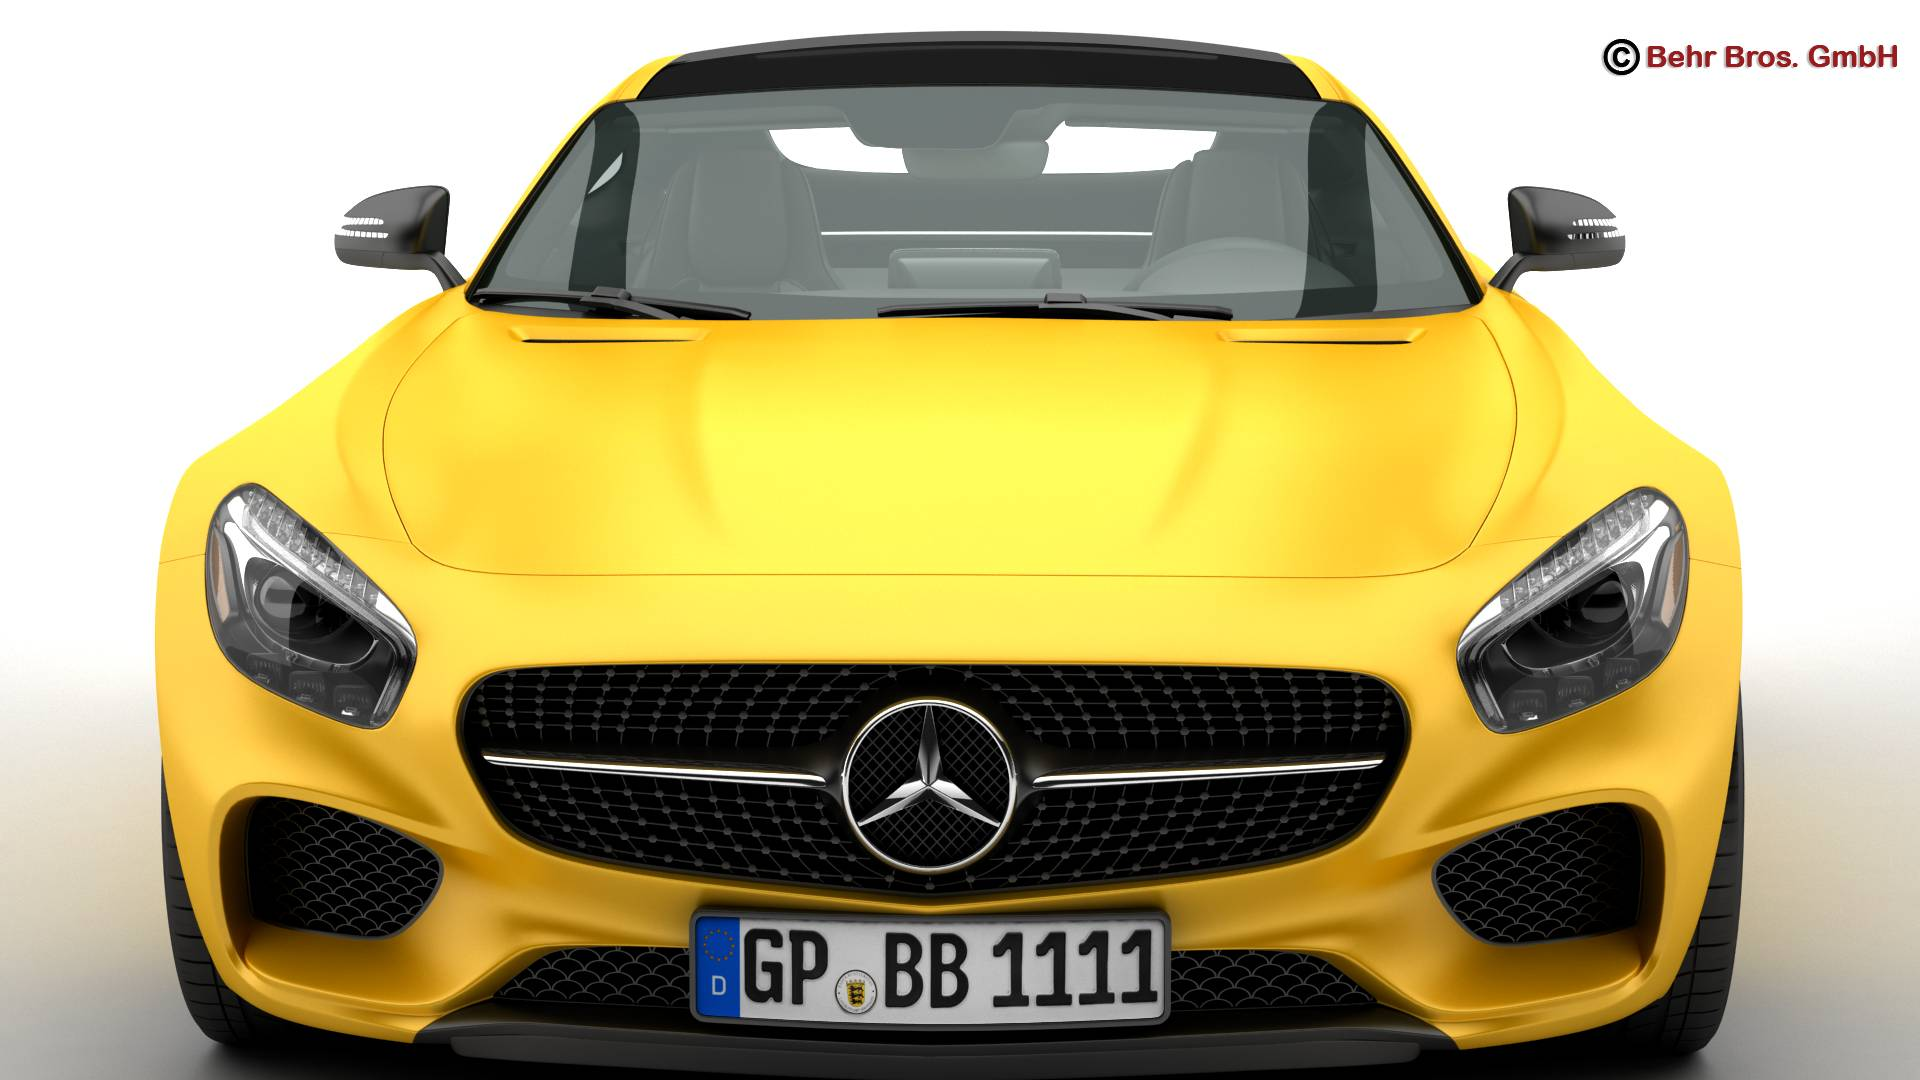 mercedes amg gt 2015 eu and us version 3d model 3ds max fbx c4d lwo ma mb obj 210118